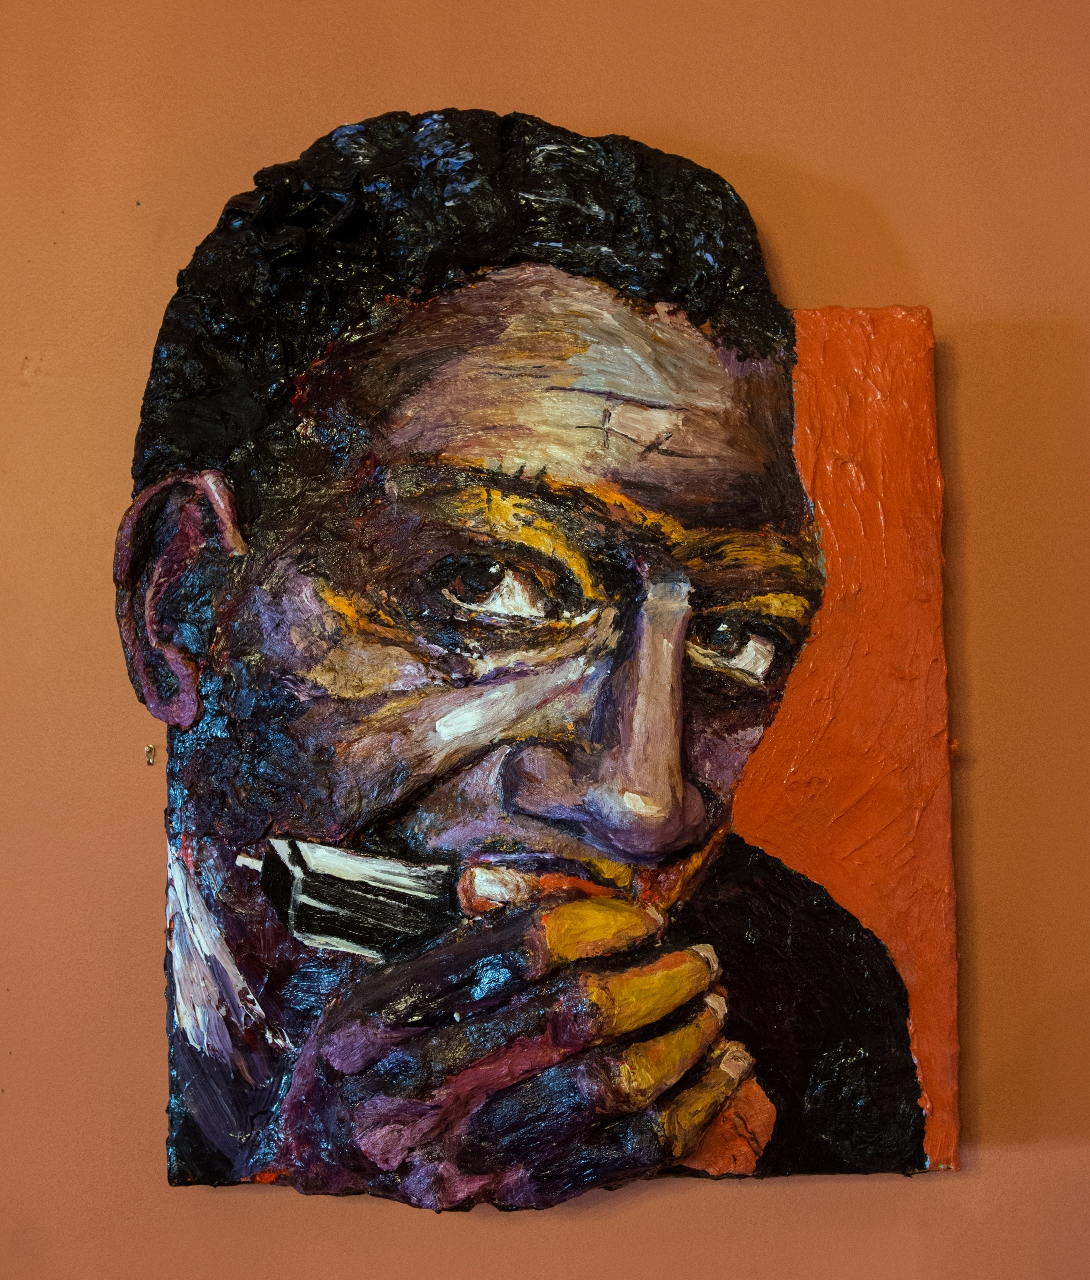 Built-Out Portrait of Little Walter Jacobs by Artist Brett Stuart Wilson